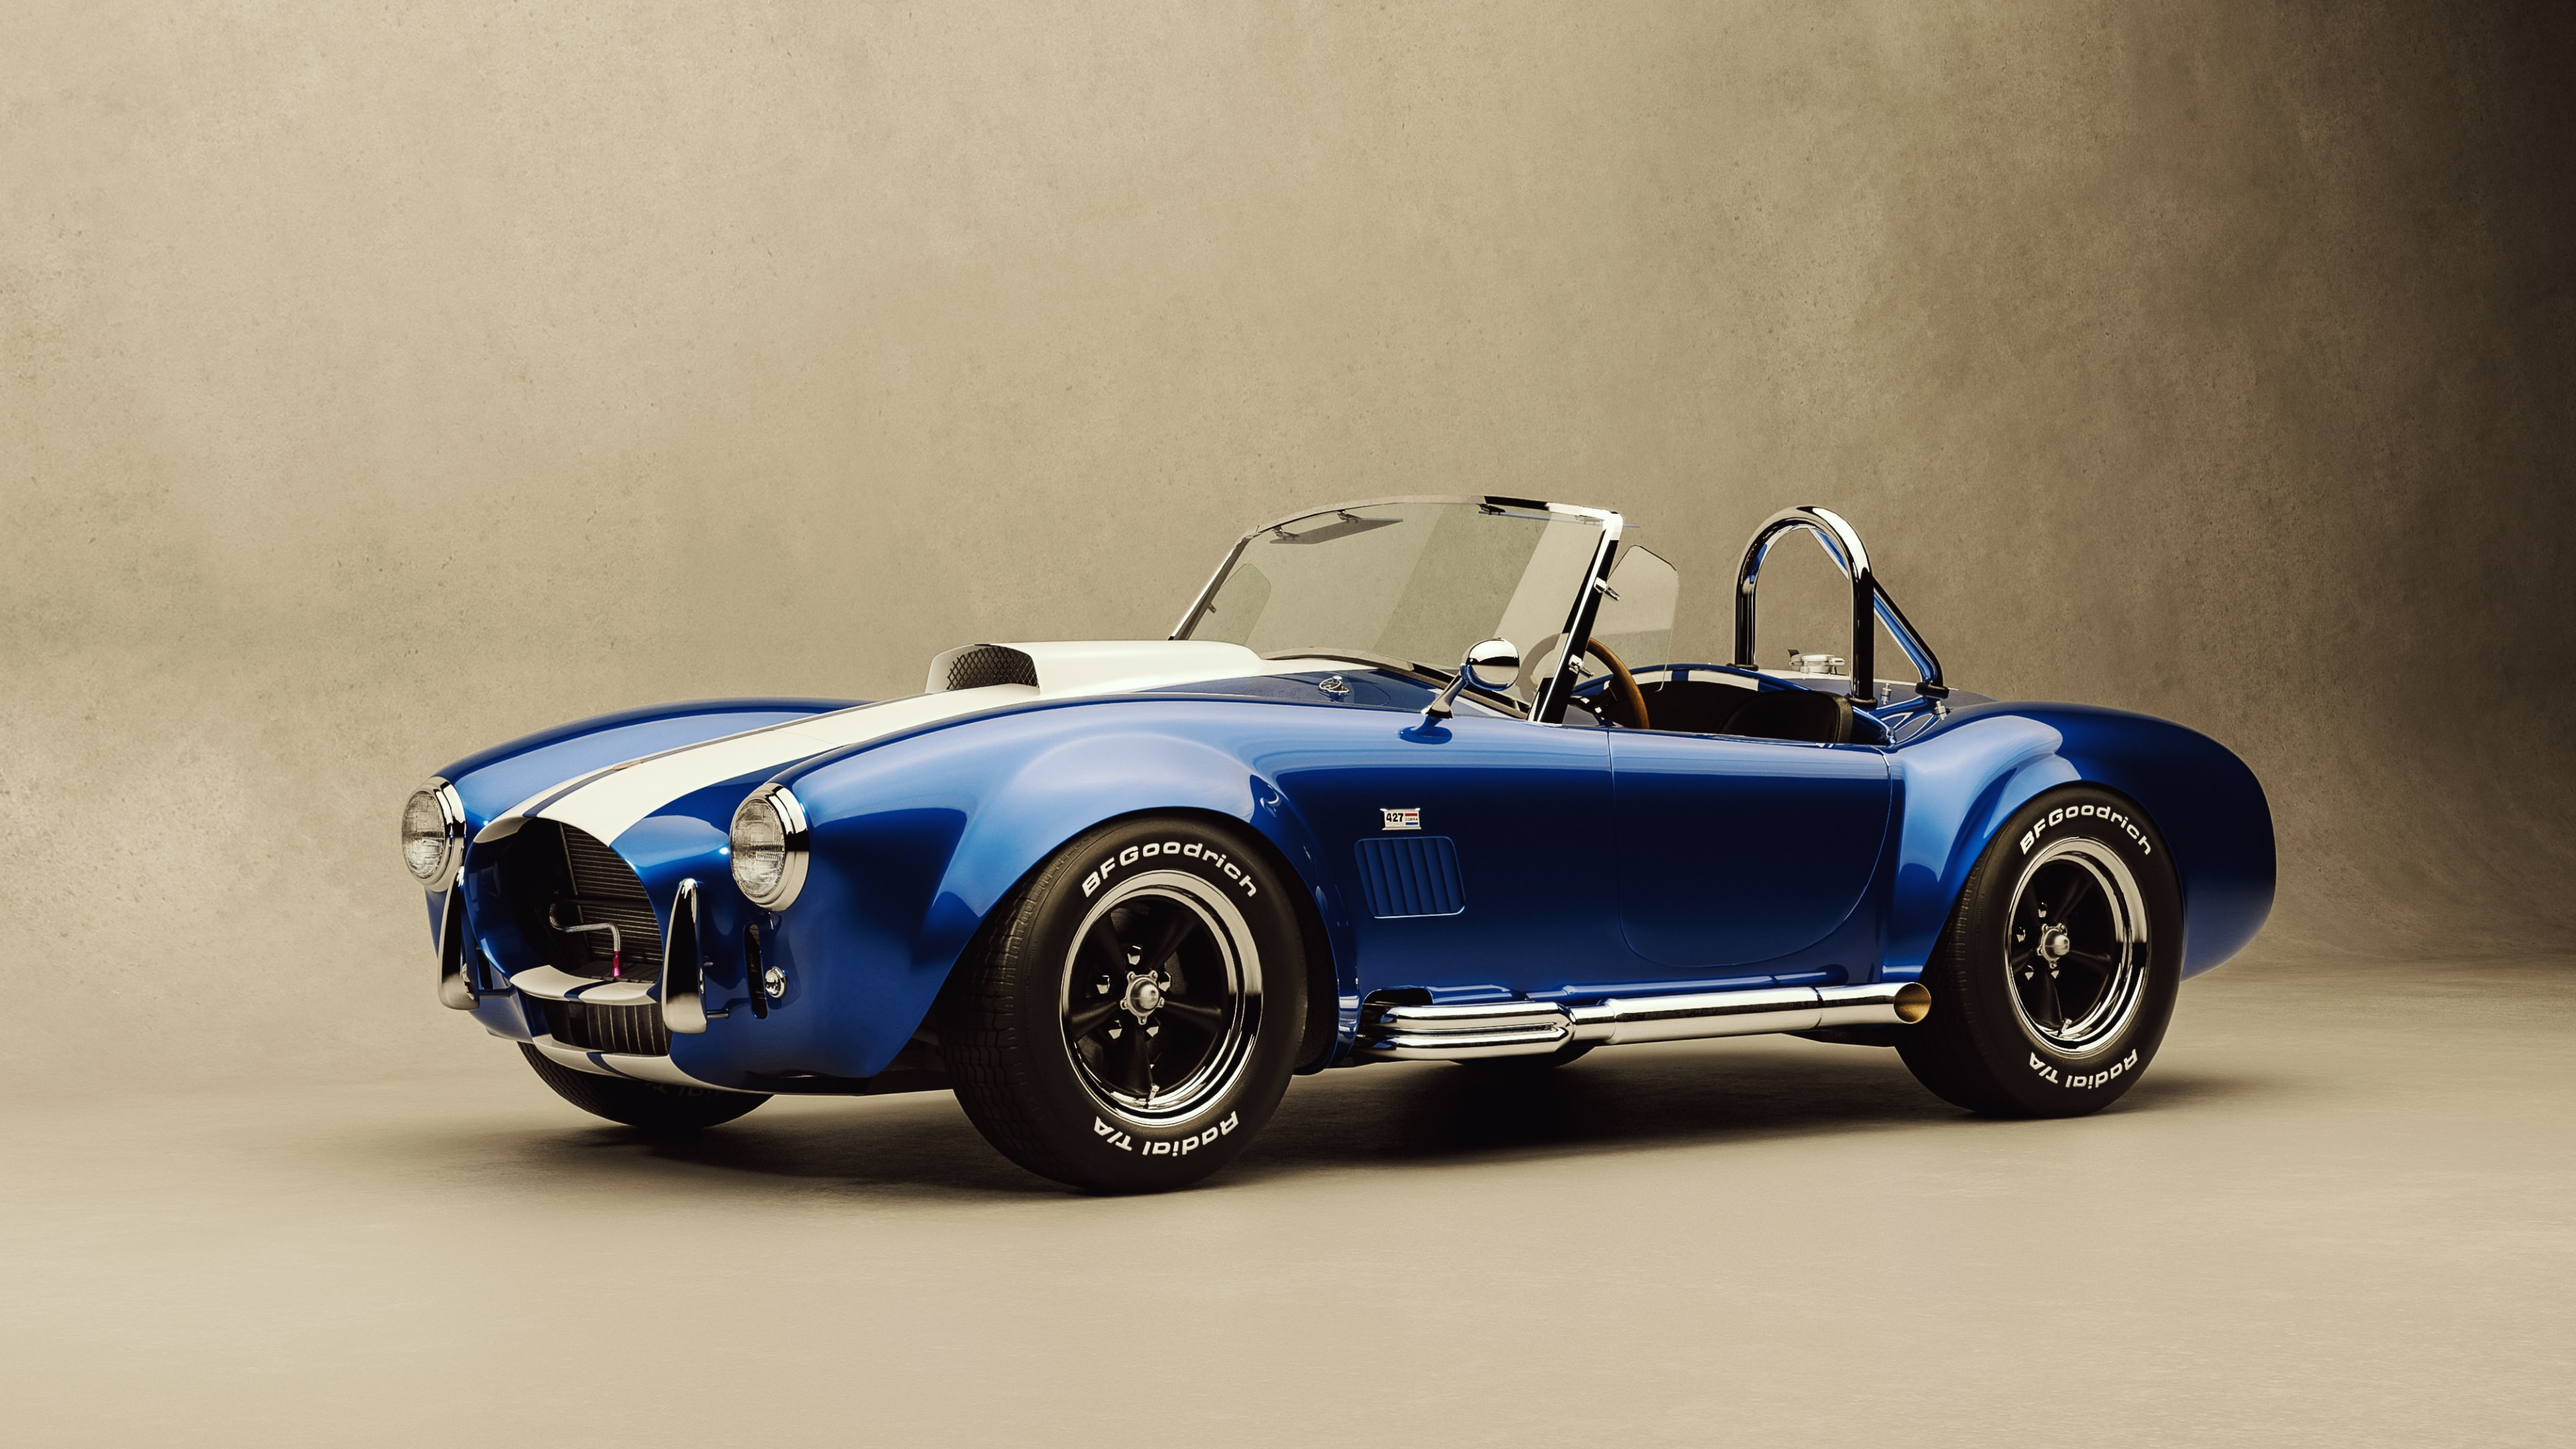 Free Download Car Vintage Ford Shelby Cobra 427 Hd Wallpapers 4k Wallpapers 3840x2160 For Your Desktop Mobile Tablet Explore 47 4k Car Wallpapers 4k Car Wallpapers 4k Car Wallpapers